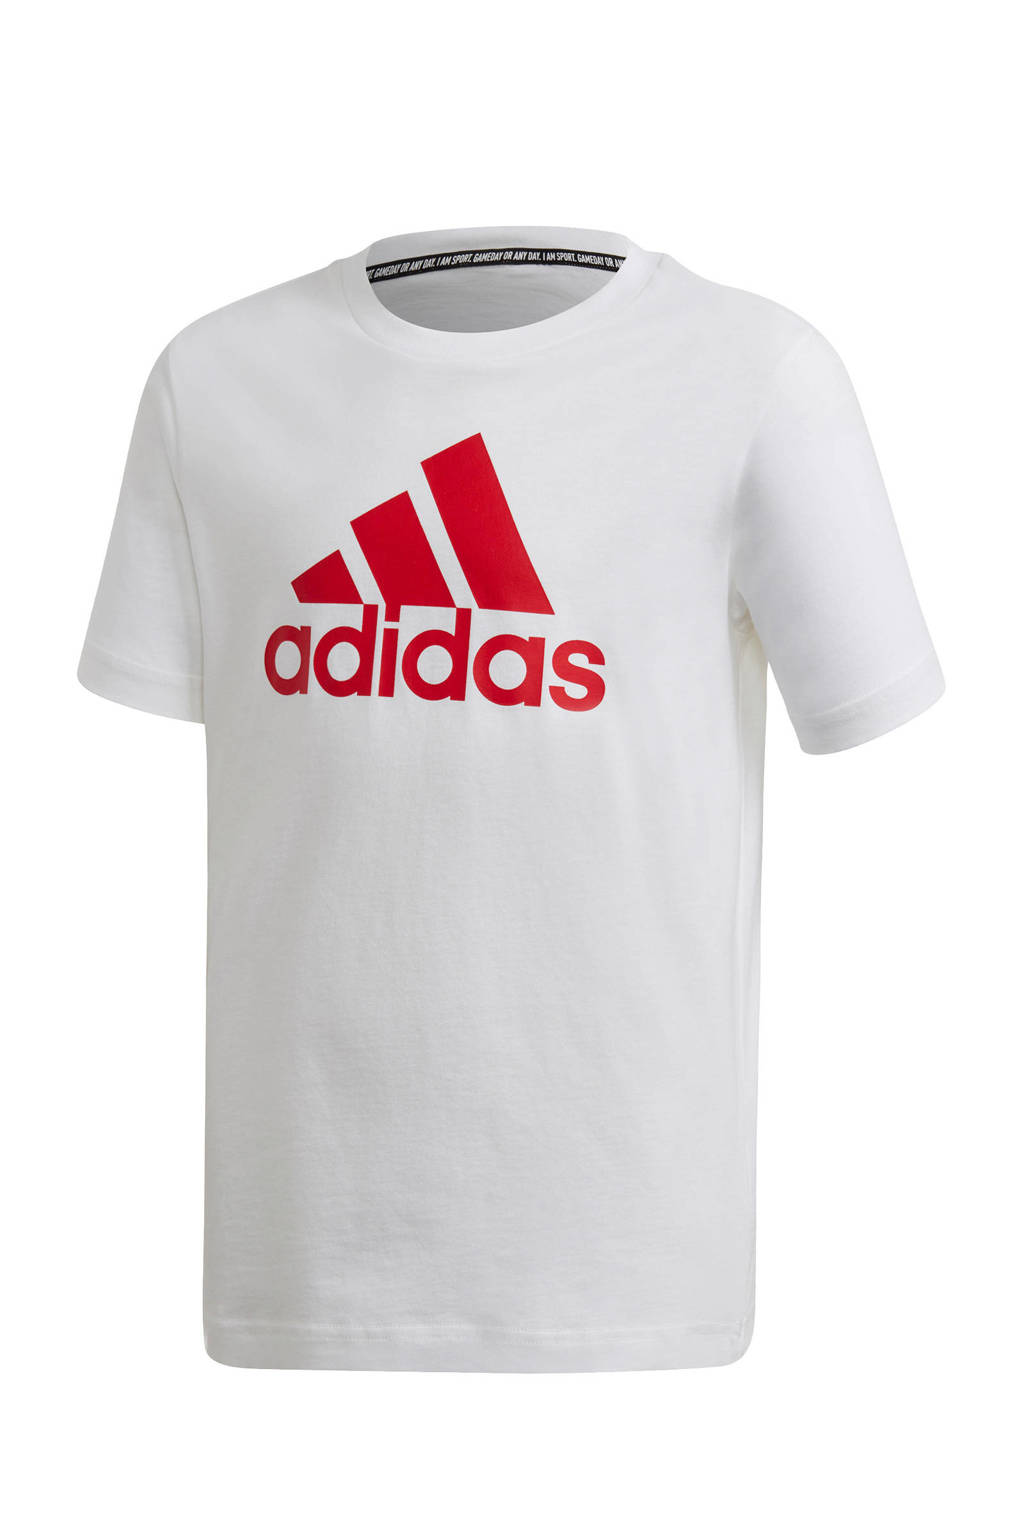 adidas   sport T-shirt wit/rood, Wit/rood